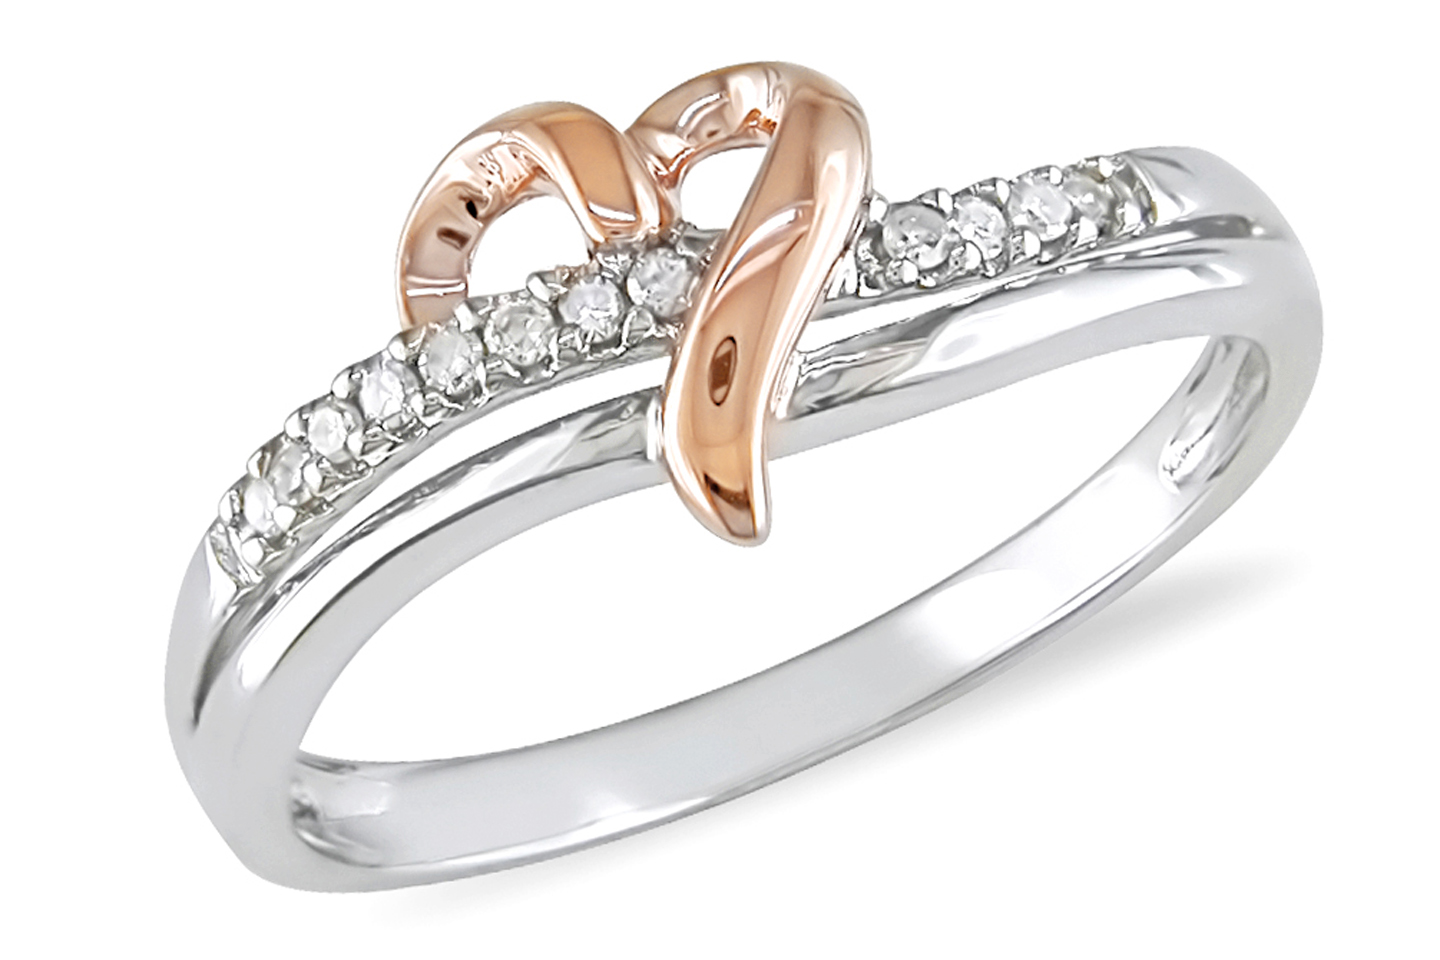 ring jewelry hd wallpapers cool desktop backgrounds widescreen 347